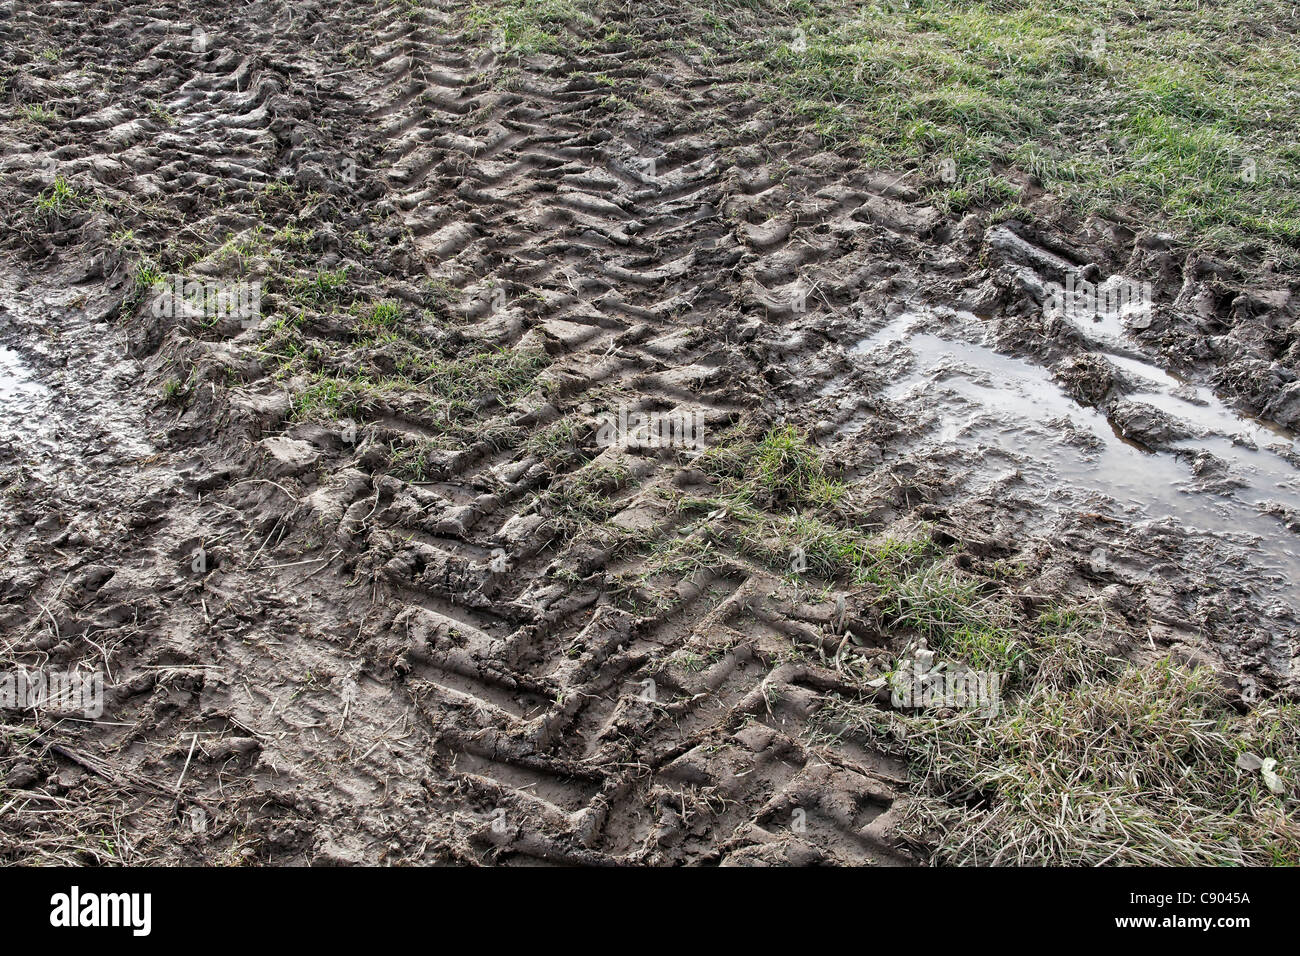 Tractor Tracks in Mud - Stock Image